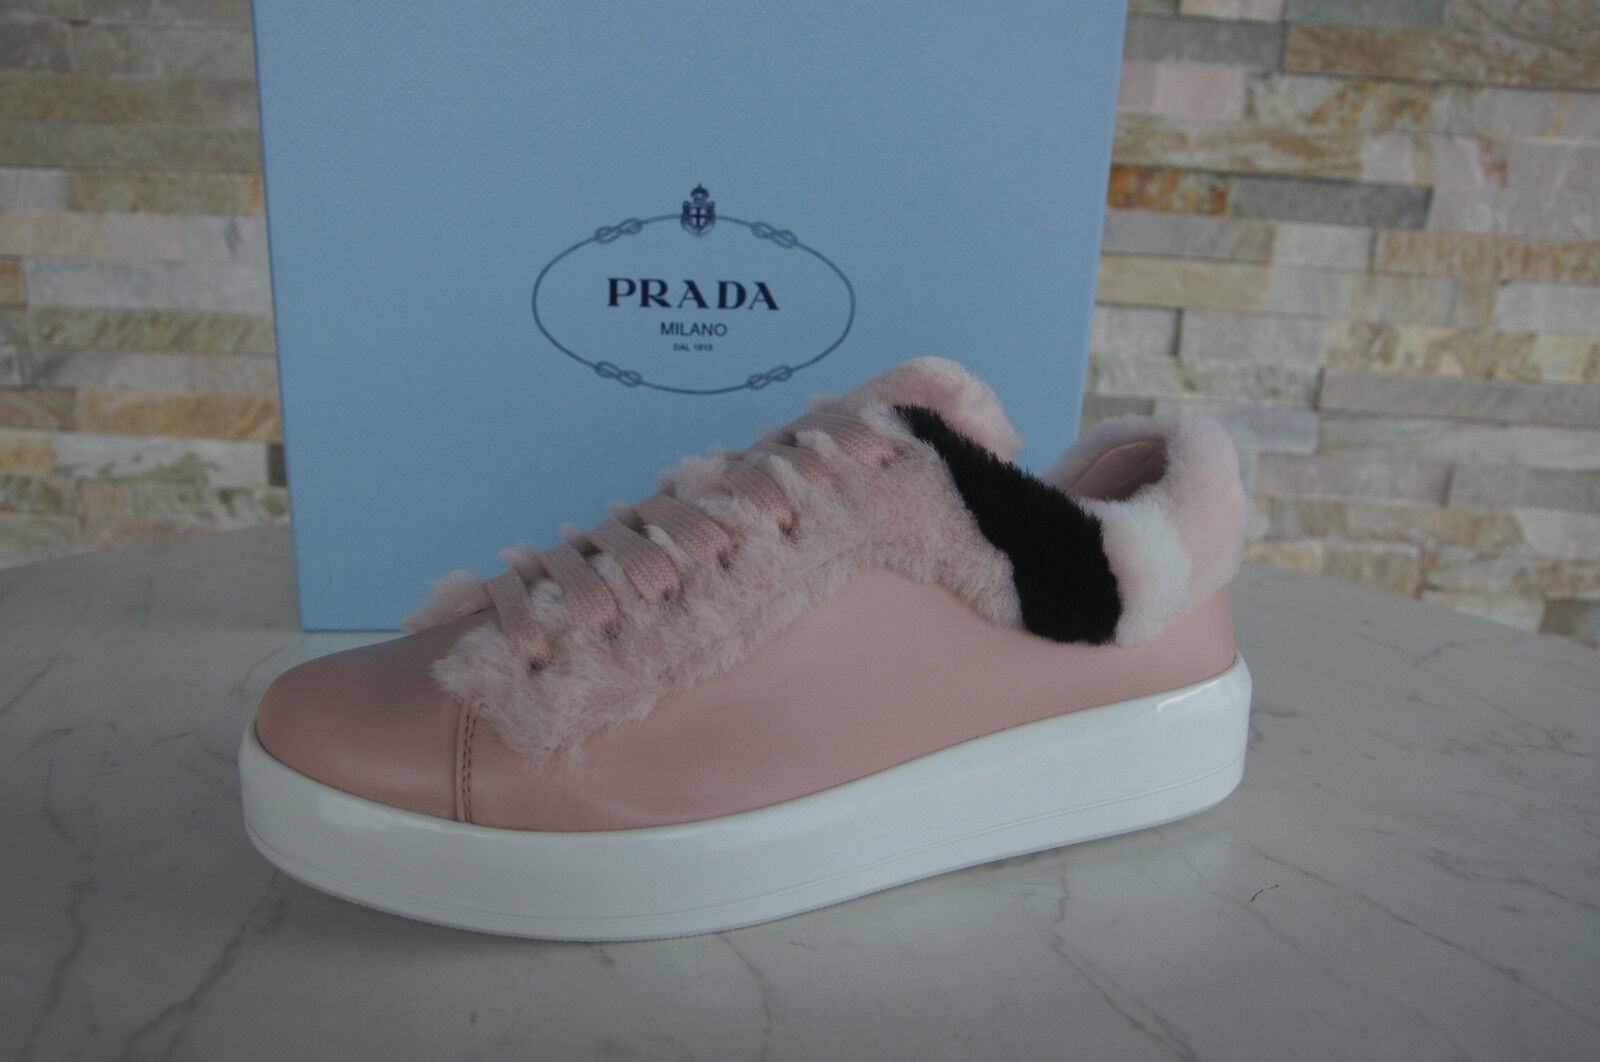 PRADA 37 Sneakers Fur shoes Lace Up shoes Sheepskin Peach NEW formerly